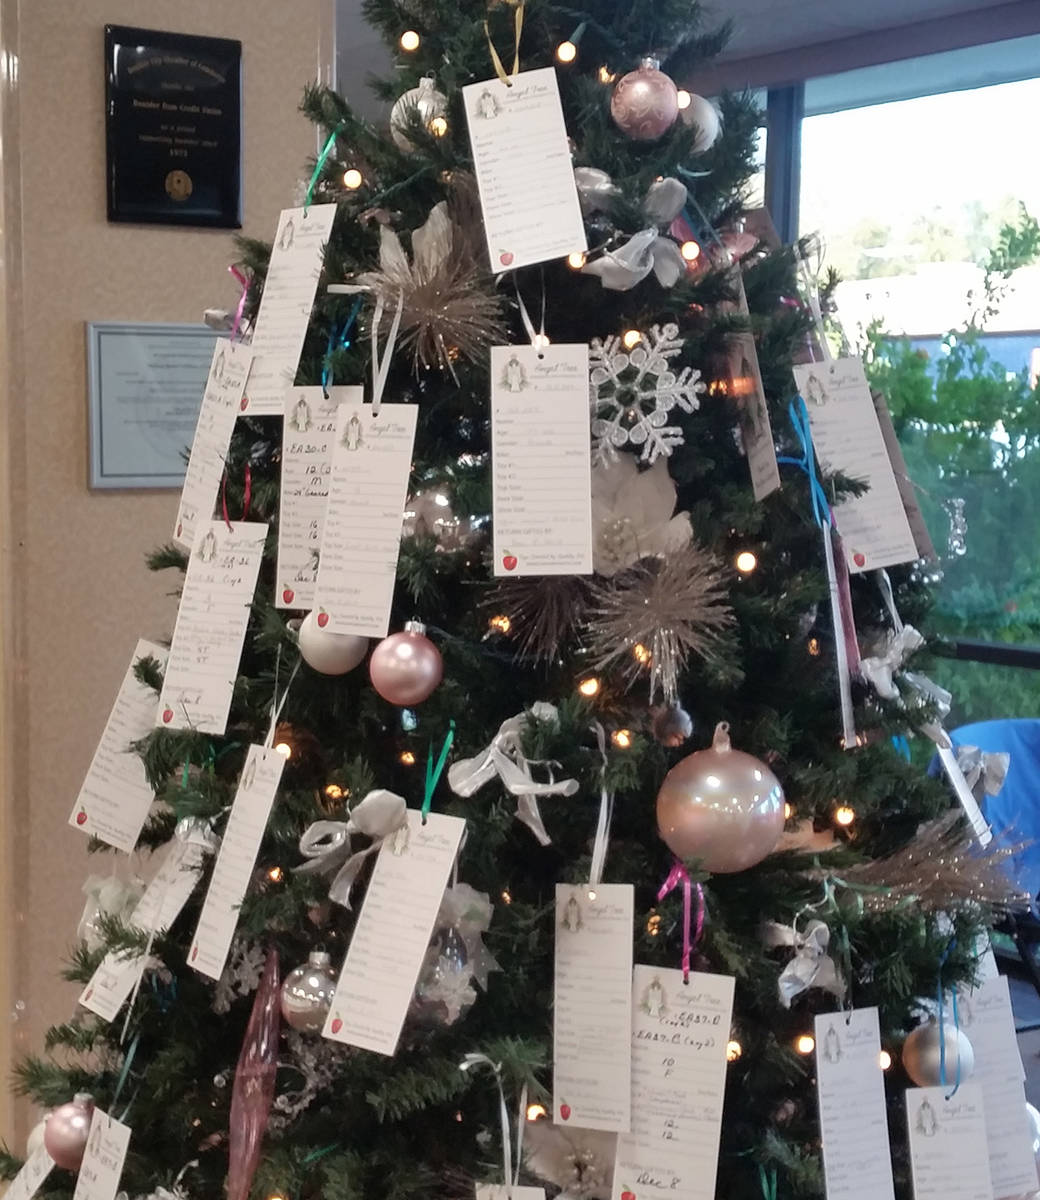 Tags with information about the needs of local children and seniors adorn the Angel Tree that w ...